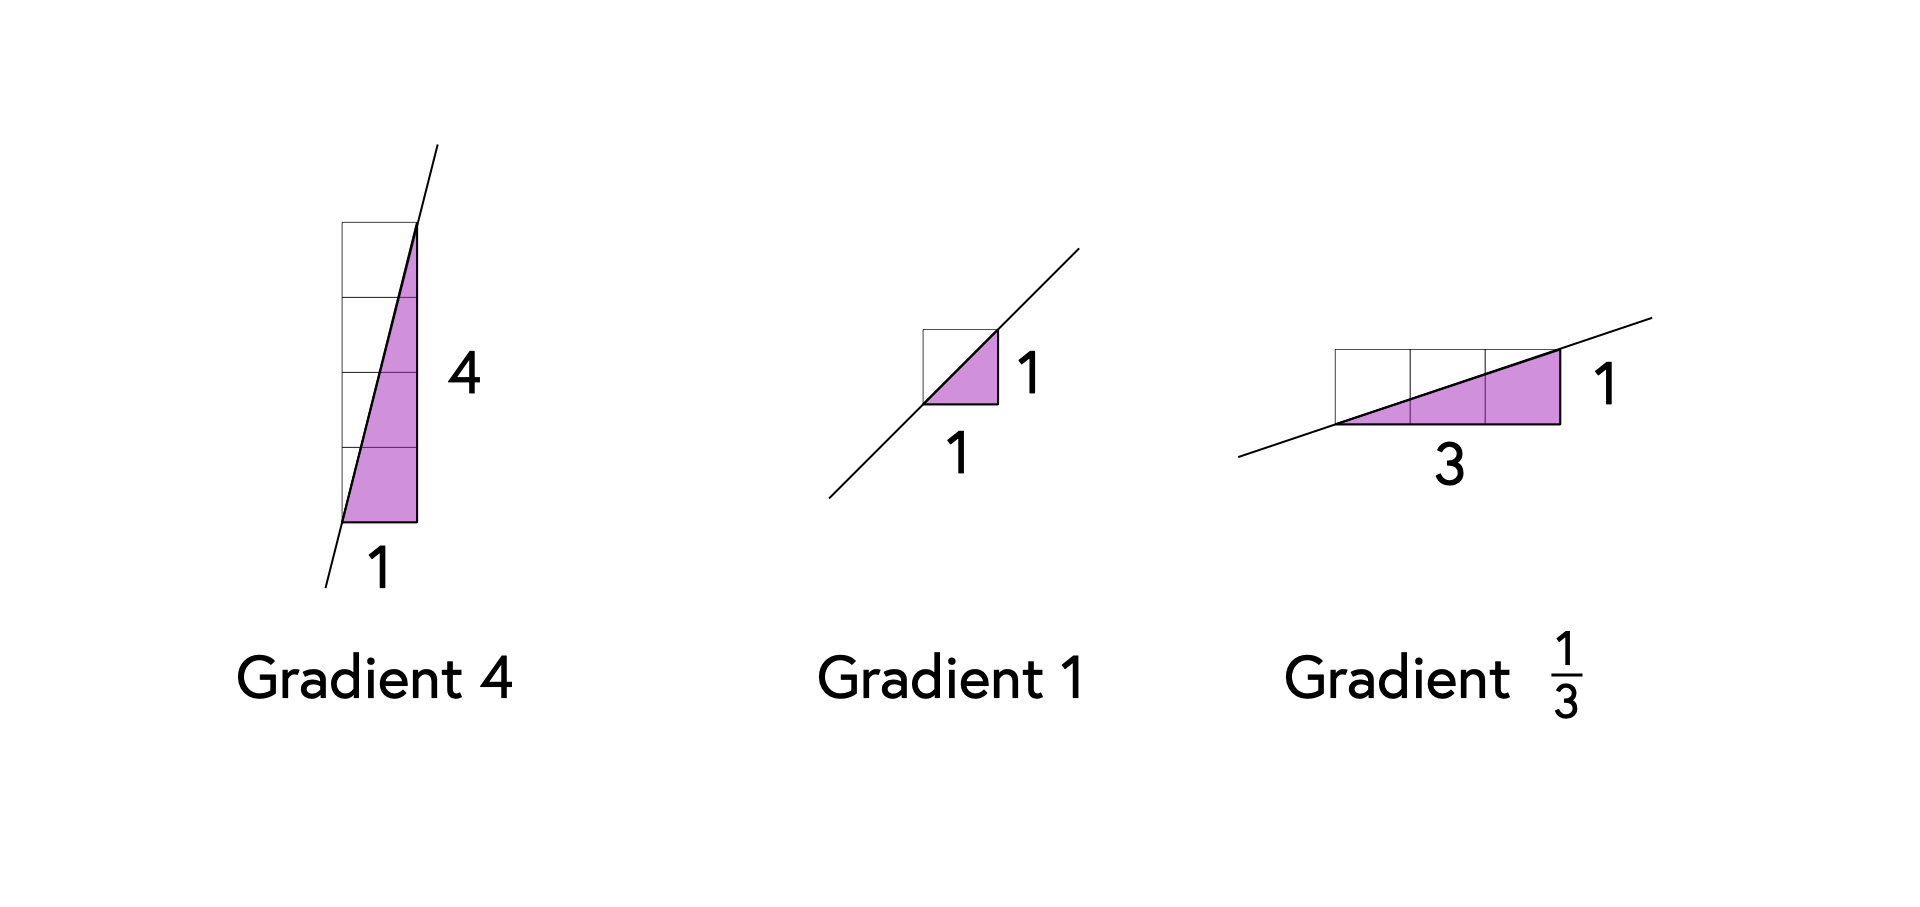 On the left above the word Gradient in black text and the number 4 are four squares half a centimetre by half a centimetre, stacked on top of each other as a grid, this shape is cut in half by a black line diagonally, the area cut in half is filled with pink to the right and is white on the left, the number 1 appears at the bottom of the grid and the number 4 appears next to the good on the right, in the centre is another square, dissected by a black diagonal line, the area dissected is pink on the right, the area above the line is white, the word Gradient and the number 1 appear at the bottom, a 1 appears next to the square at the bottom and to the right, on the right three half centimetre squares appear attached left to right to form a grid, this grid is dissected by a black line, the area to the right of the line is pink, the area above the line is white, the word Gradient appears below this grid and 1/3, directly next to the squares at the bottom is a 3 and to the right there is a 1